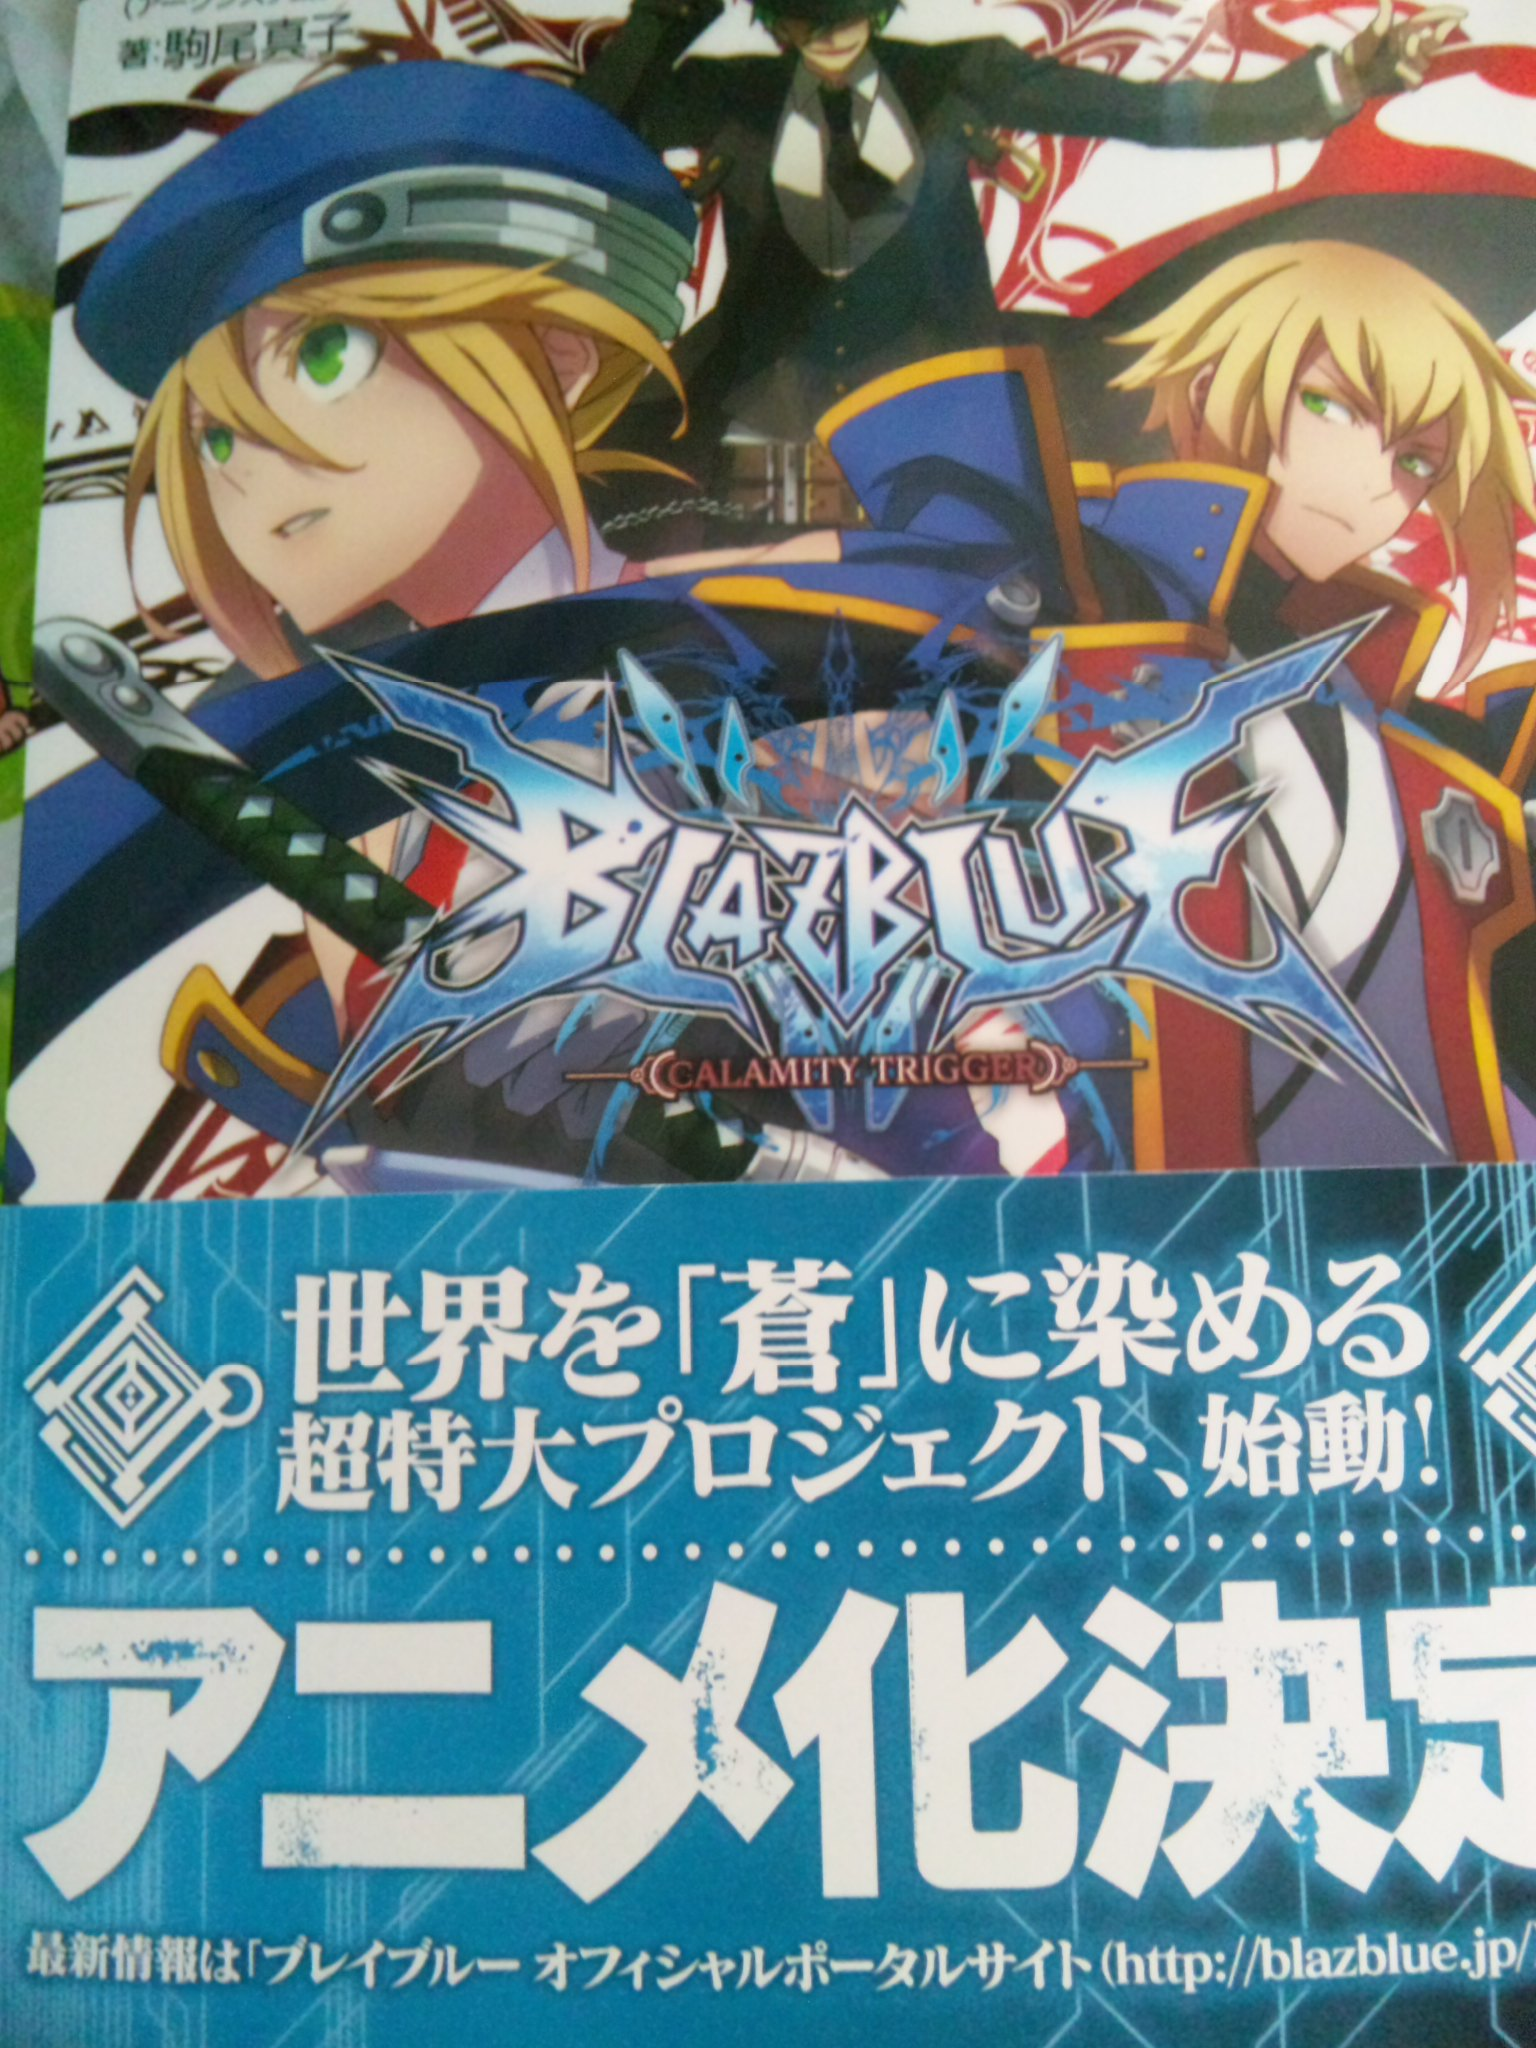 BlazBlue anime announcement